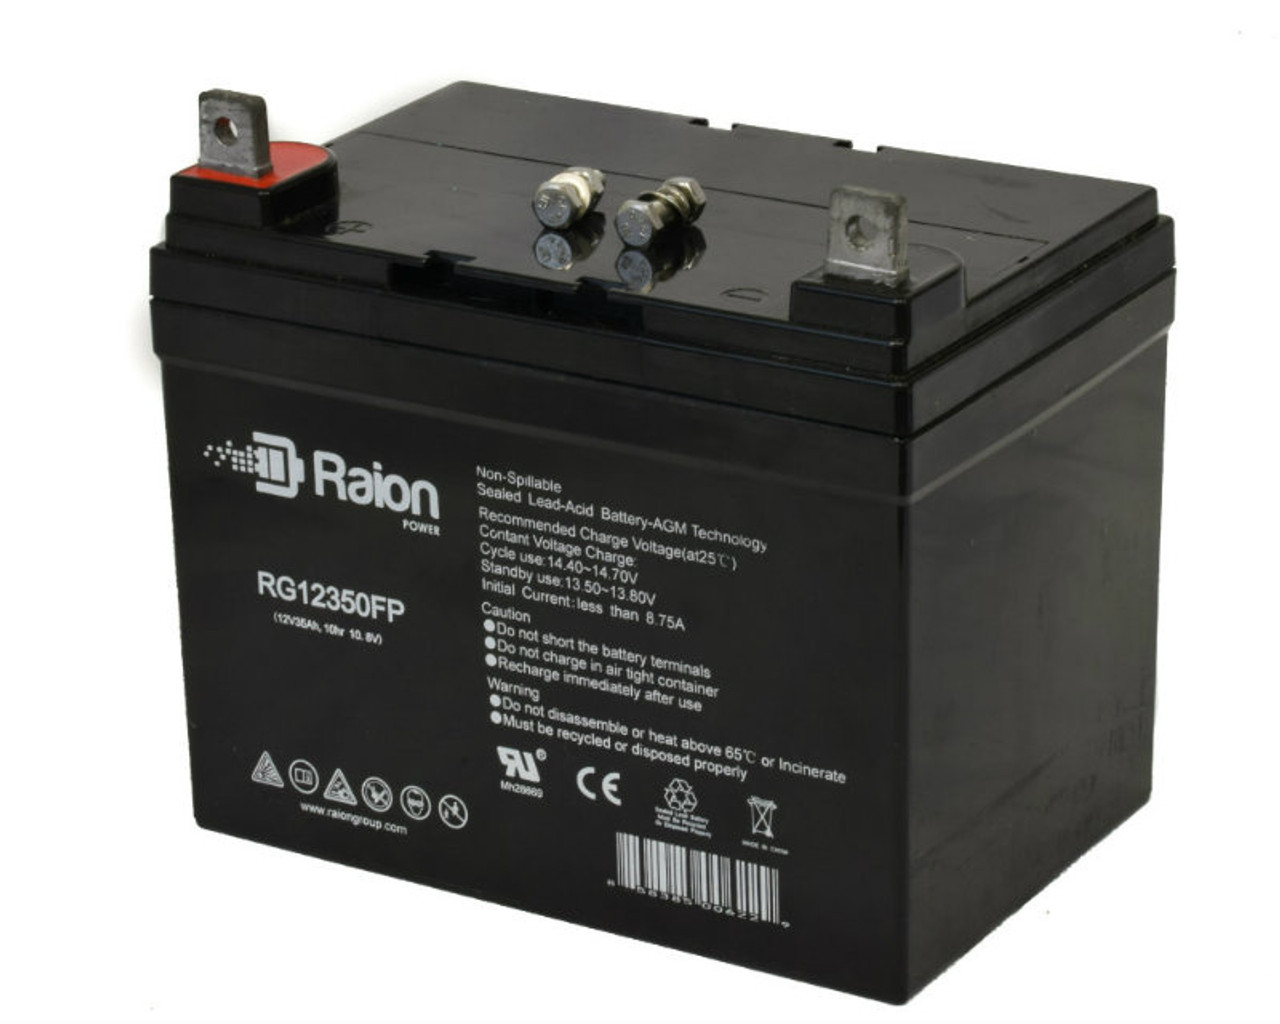 RG12350FP Sealed Lead Acid Battery Pack For IMC Heartway Rumba HP3HD U1 Mobility Scooter